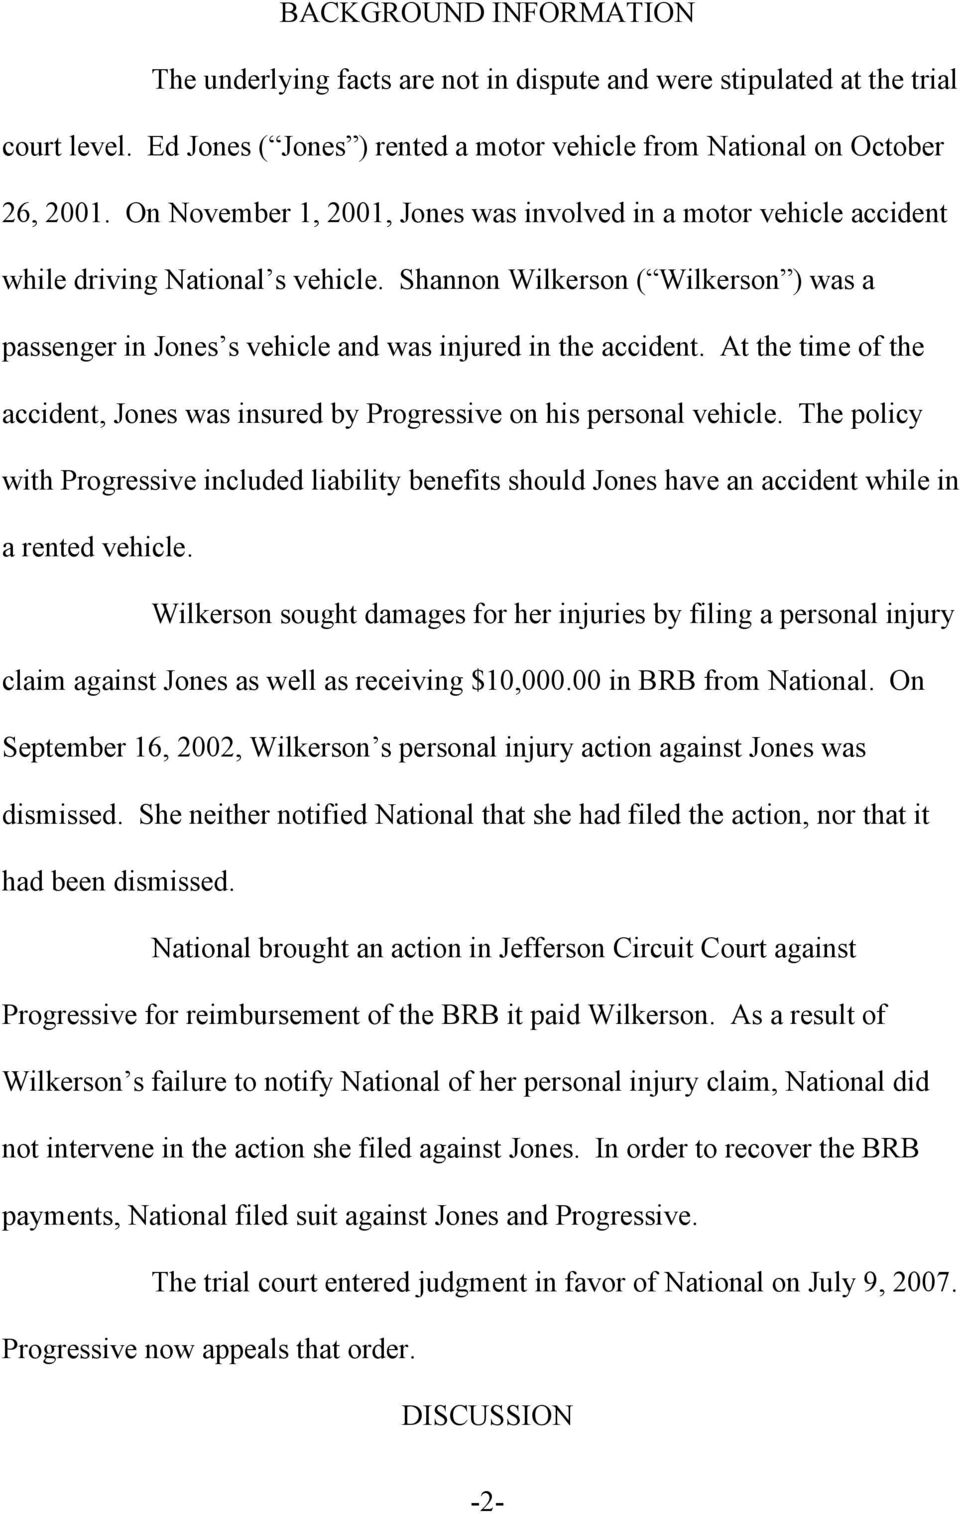 Shannon Wilkerson ( Wilkerson ) was a passenger in Jones s vehicle and was injured in the accident. At the time of the accident, Jones was insured by Progressive on his personal vehicle.